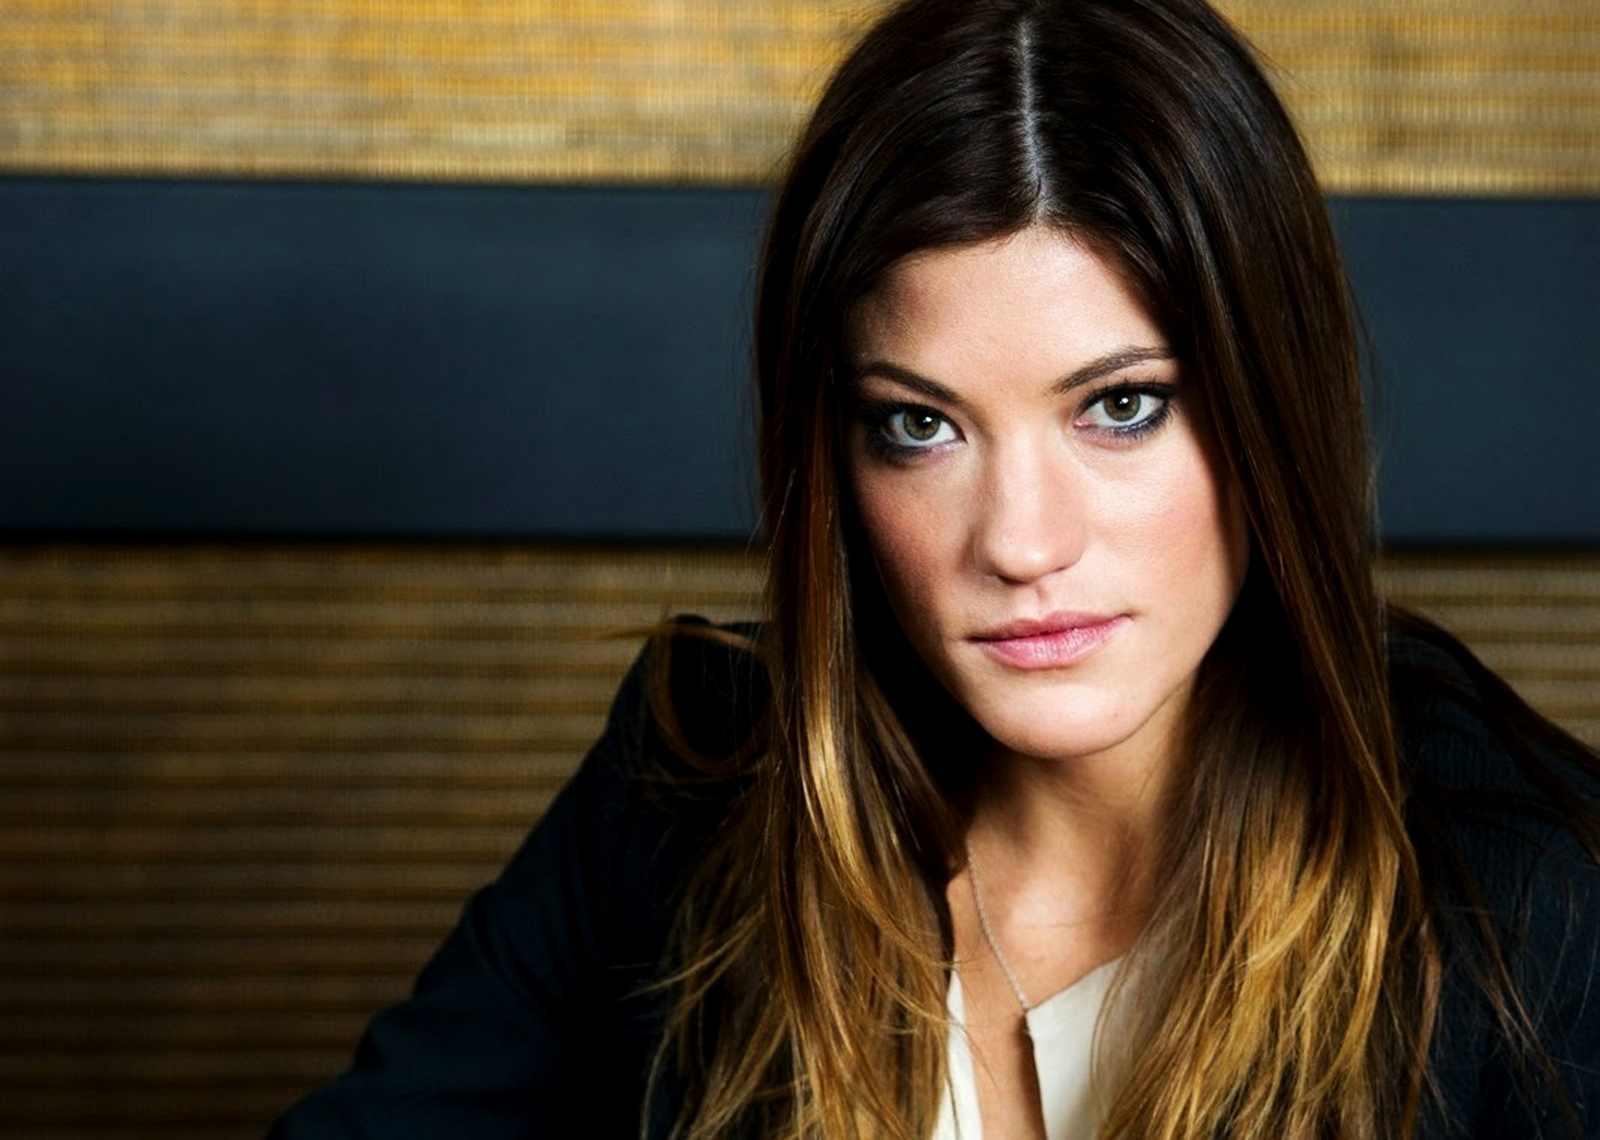 http://4.bp.blogspot.com/-mrw5RUbRFGg/ULXe3l1ubKI/AAAAAAAAGXQ/amtBein88cM/s1600/Jennifer-Carpenter-from-Dexter-HD-Wallpaper_Vvallpaper.Net.jpg